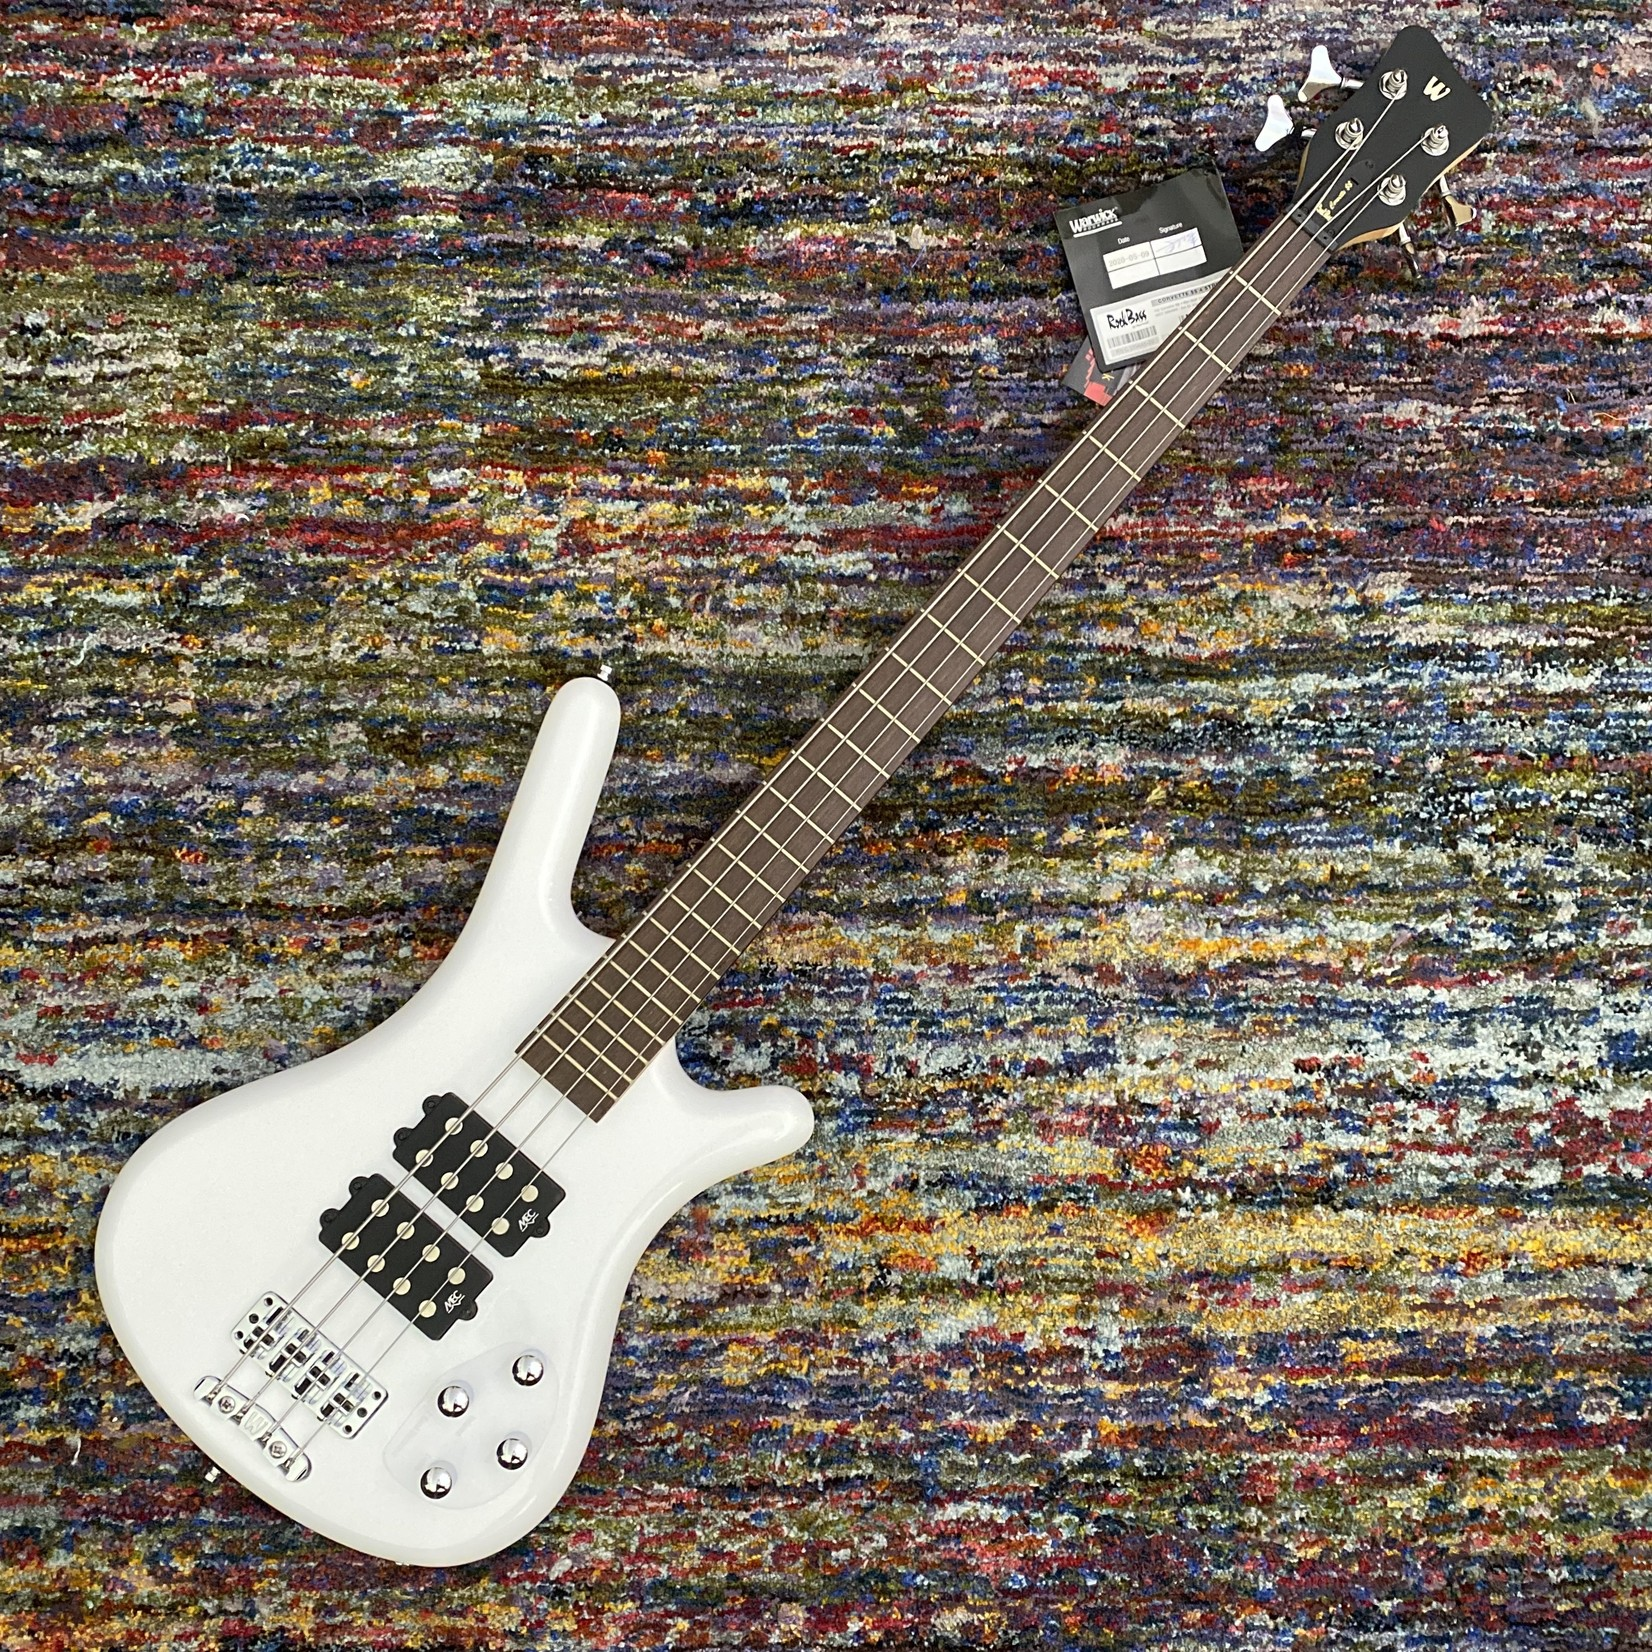 Warwick Warwick RockBass Corvette $$, 4 String Solid White, High Polish (Ash)